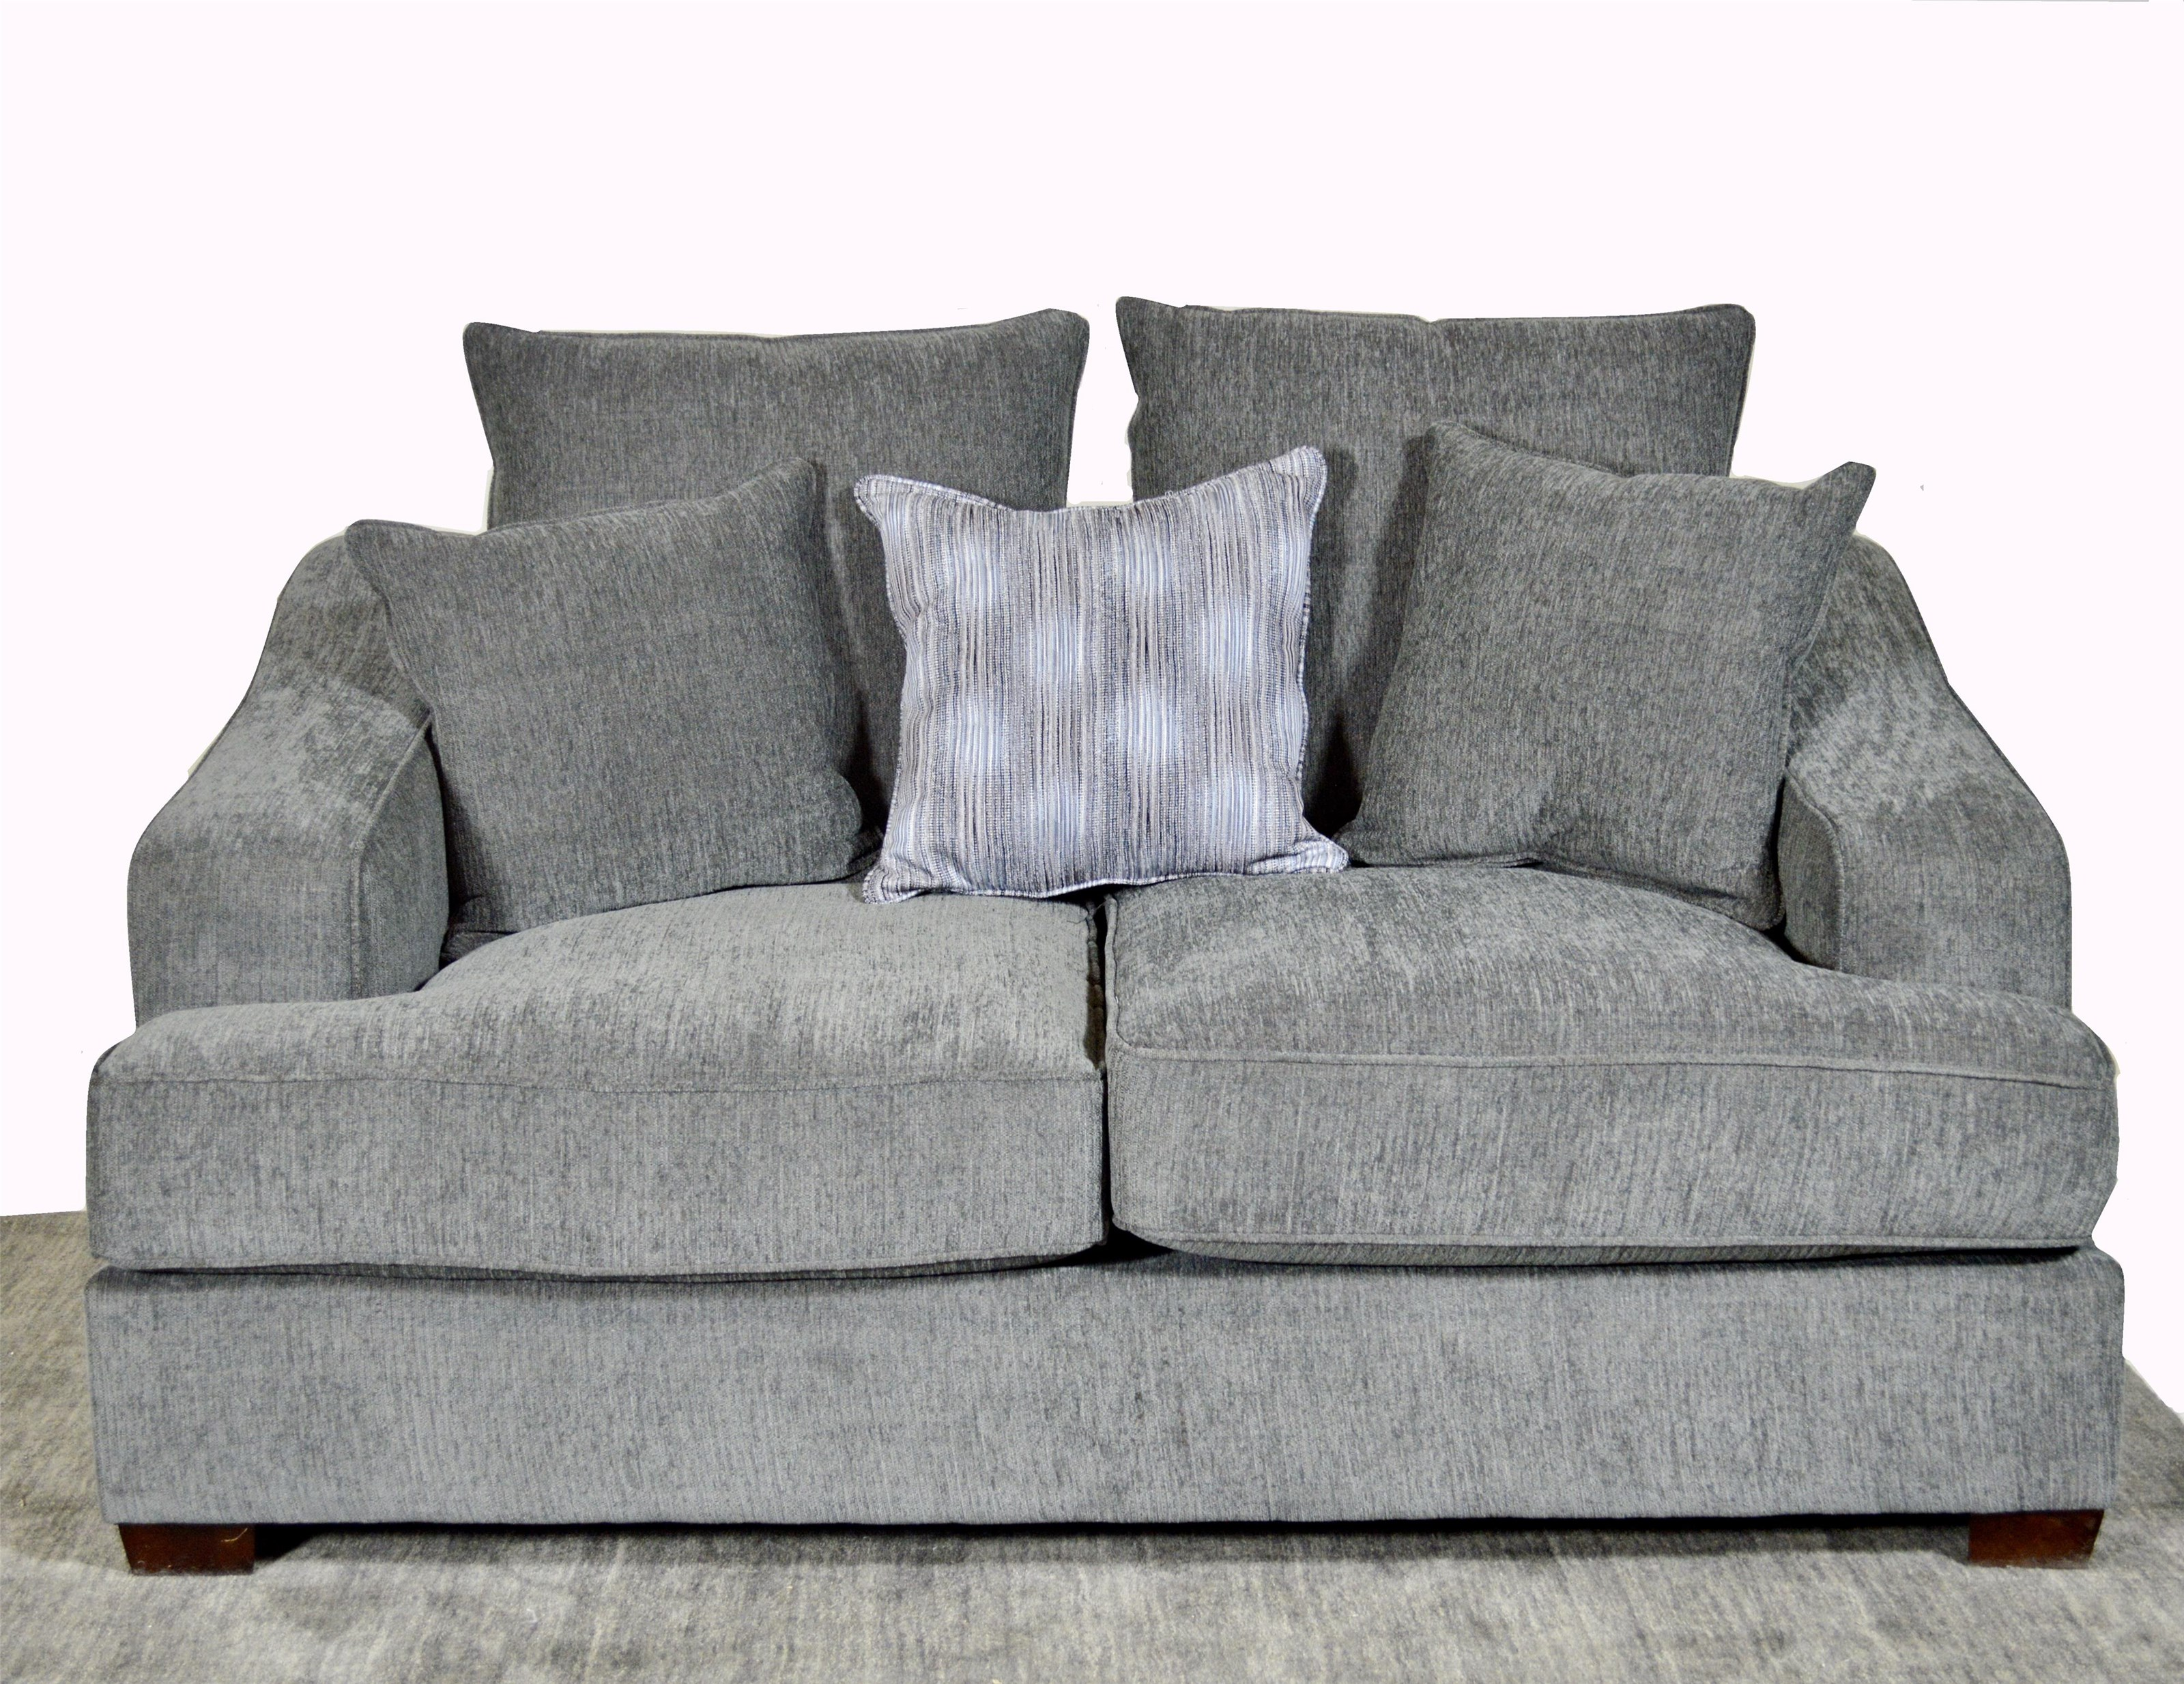 Upholstered Loveseat with Accent Pillows